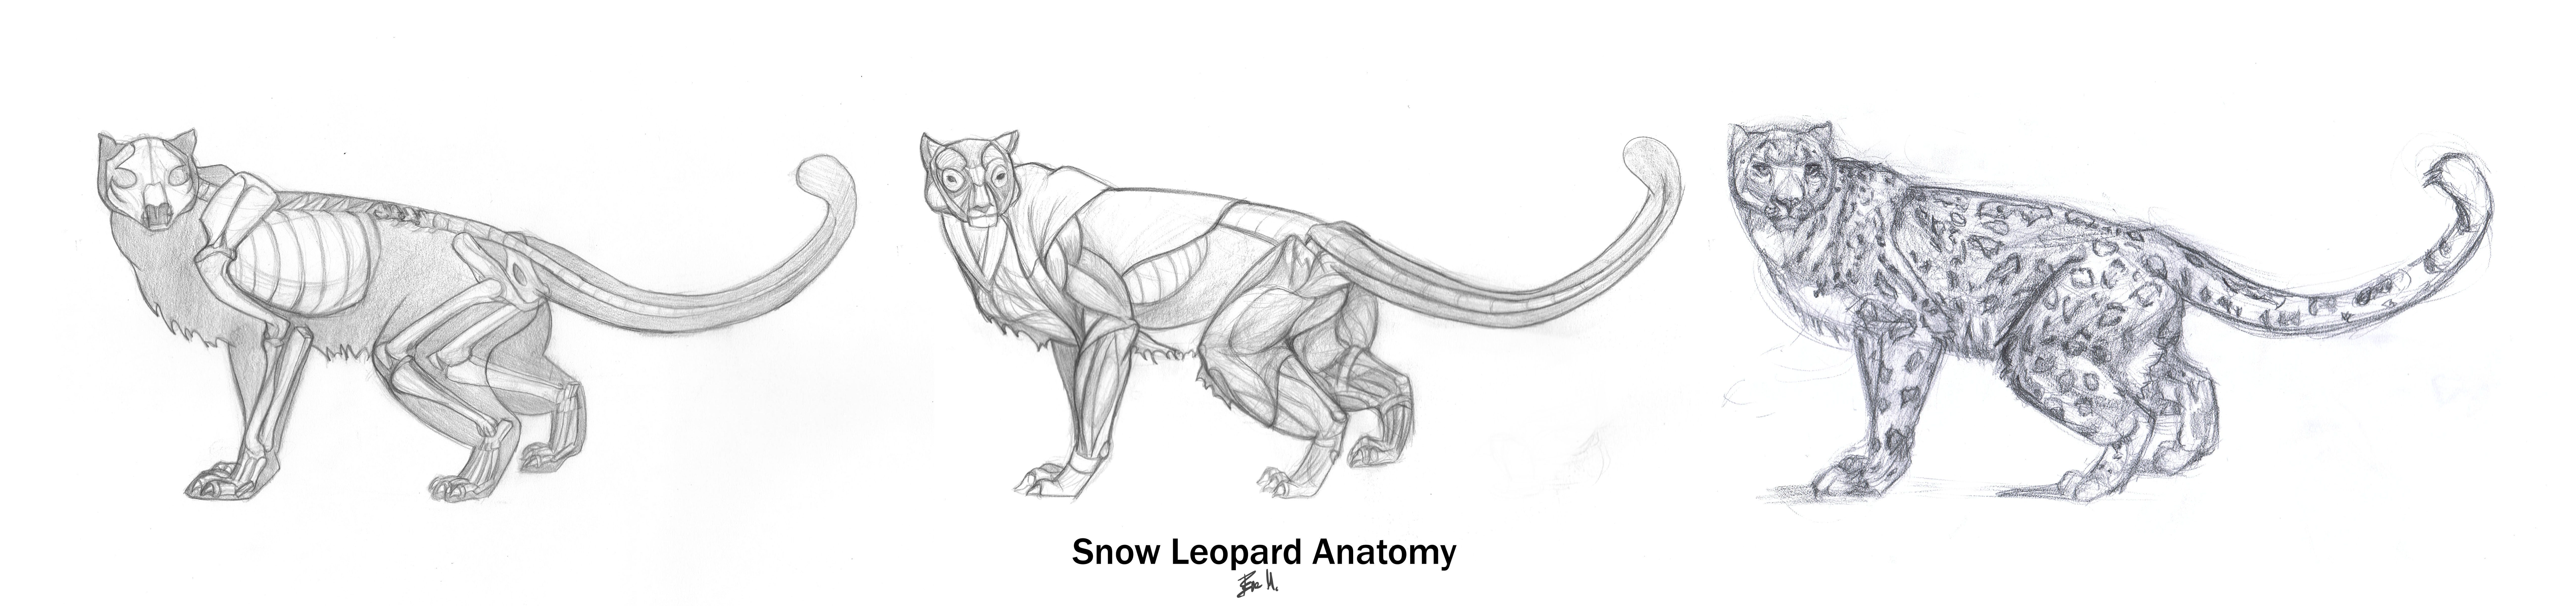 small resolution of animal anatomy snow leopard by 89ravenclaw deviantart com on deviantart